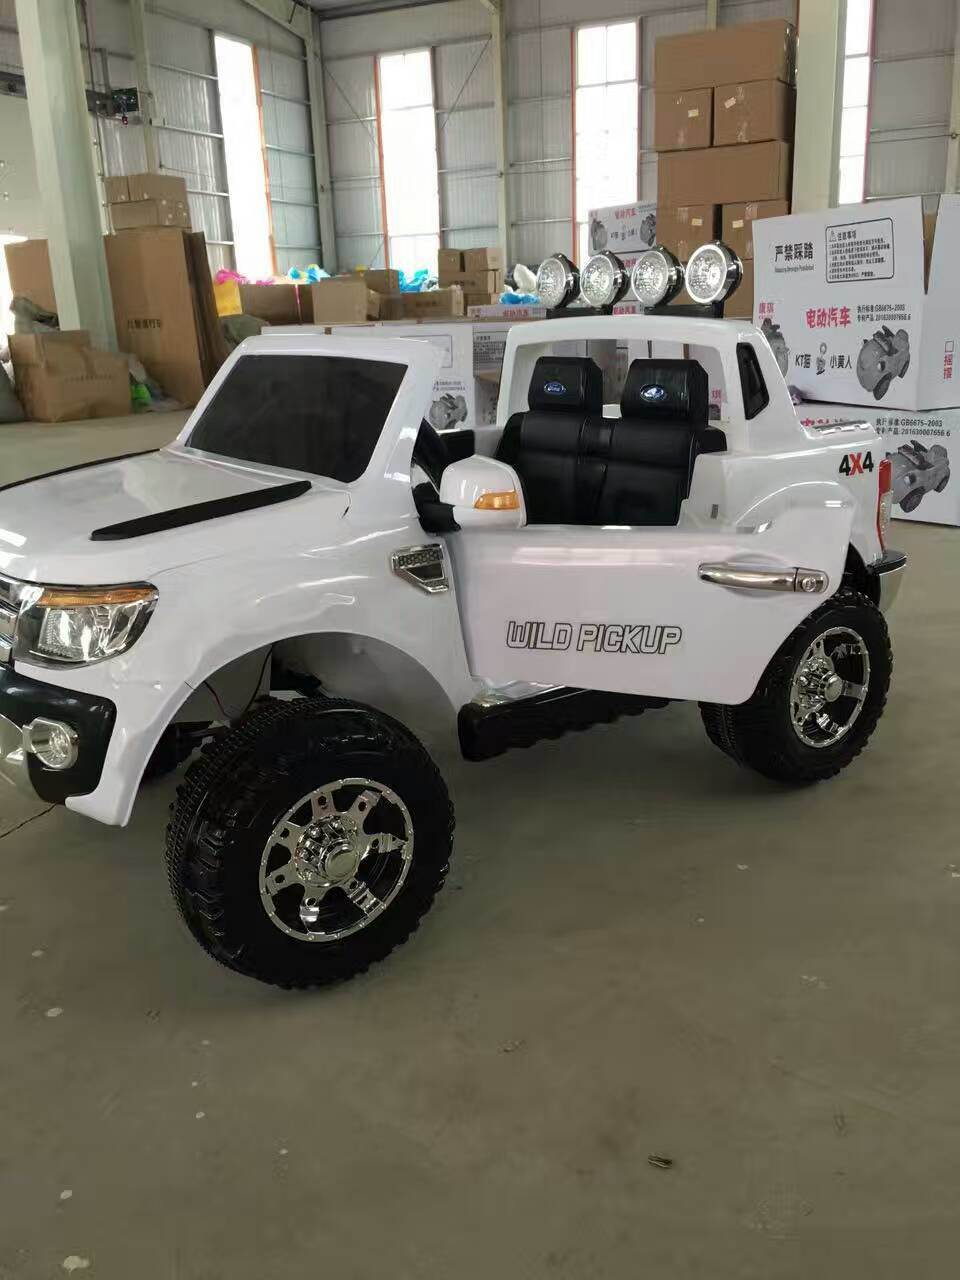 Stunning 2 Seater Big SUV Style 12V Battery Operated Car for Kids with Music Lights Doors MP3 and Remote Control Ride on LC-Car017 & China Stunning 2 Seater Big SUV Style 12V Battery Operated Car for ...